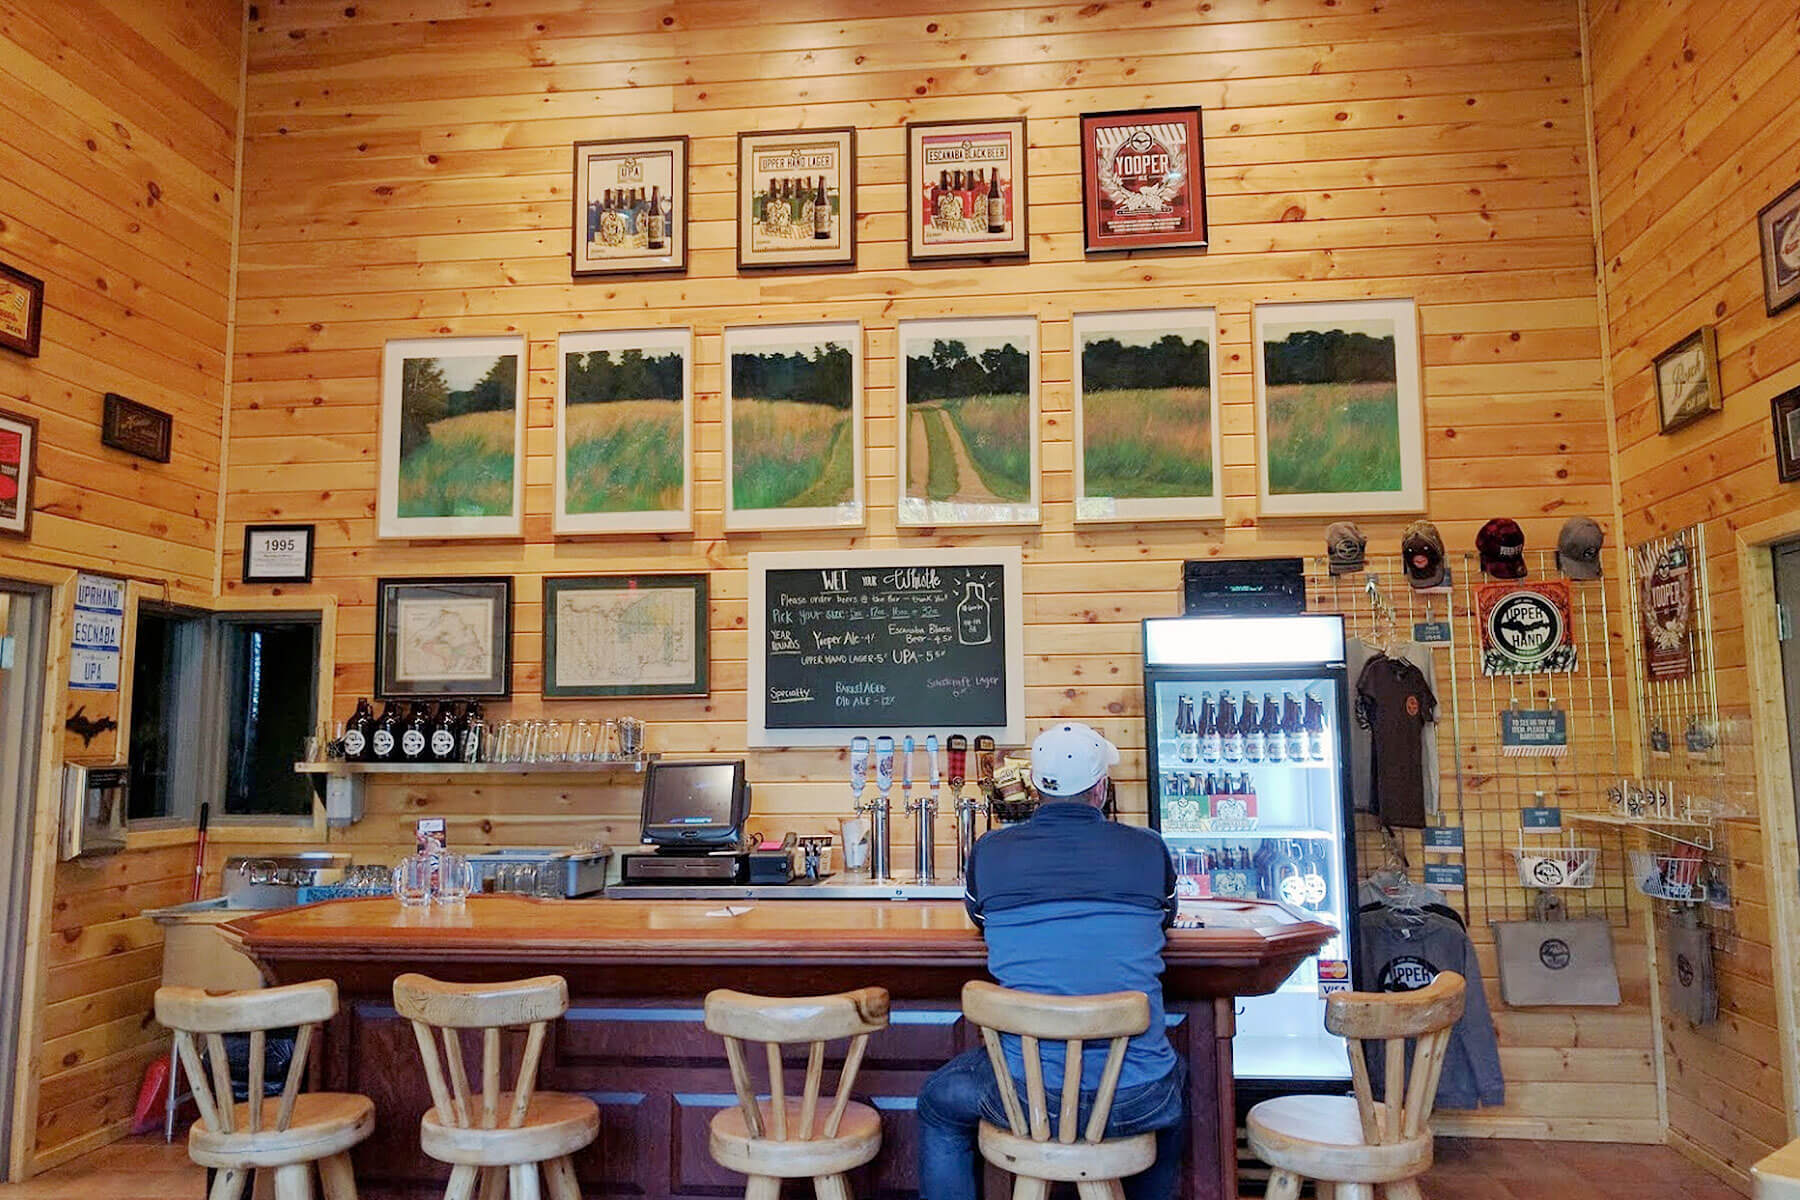 Inside the taproom at Upper Hand Brewery in Escanaba, Michigan